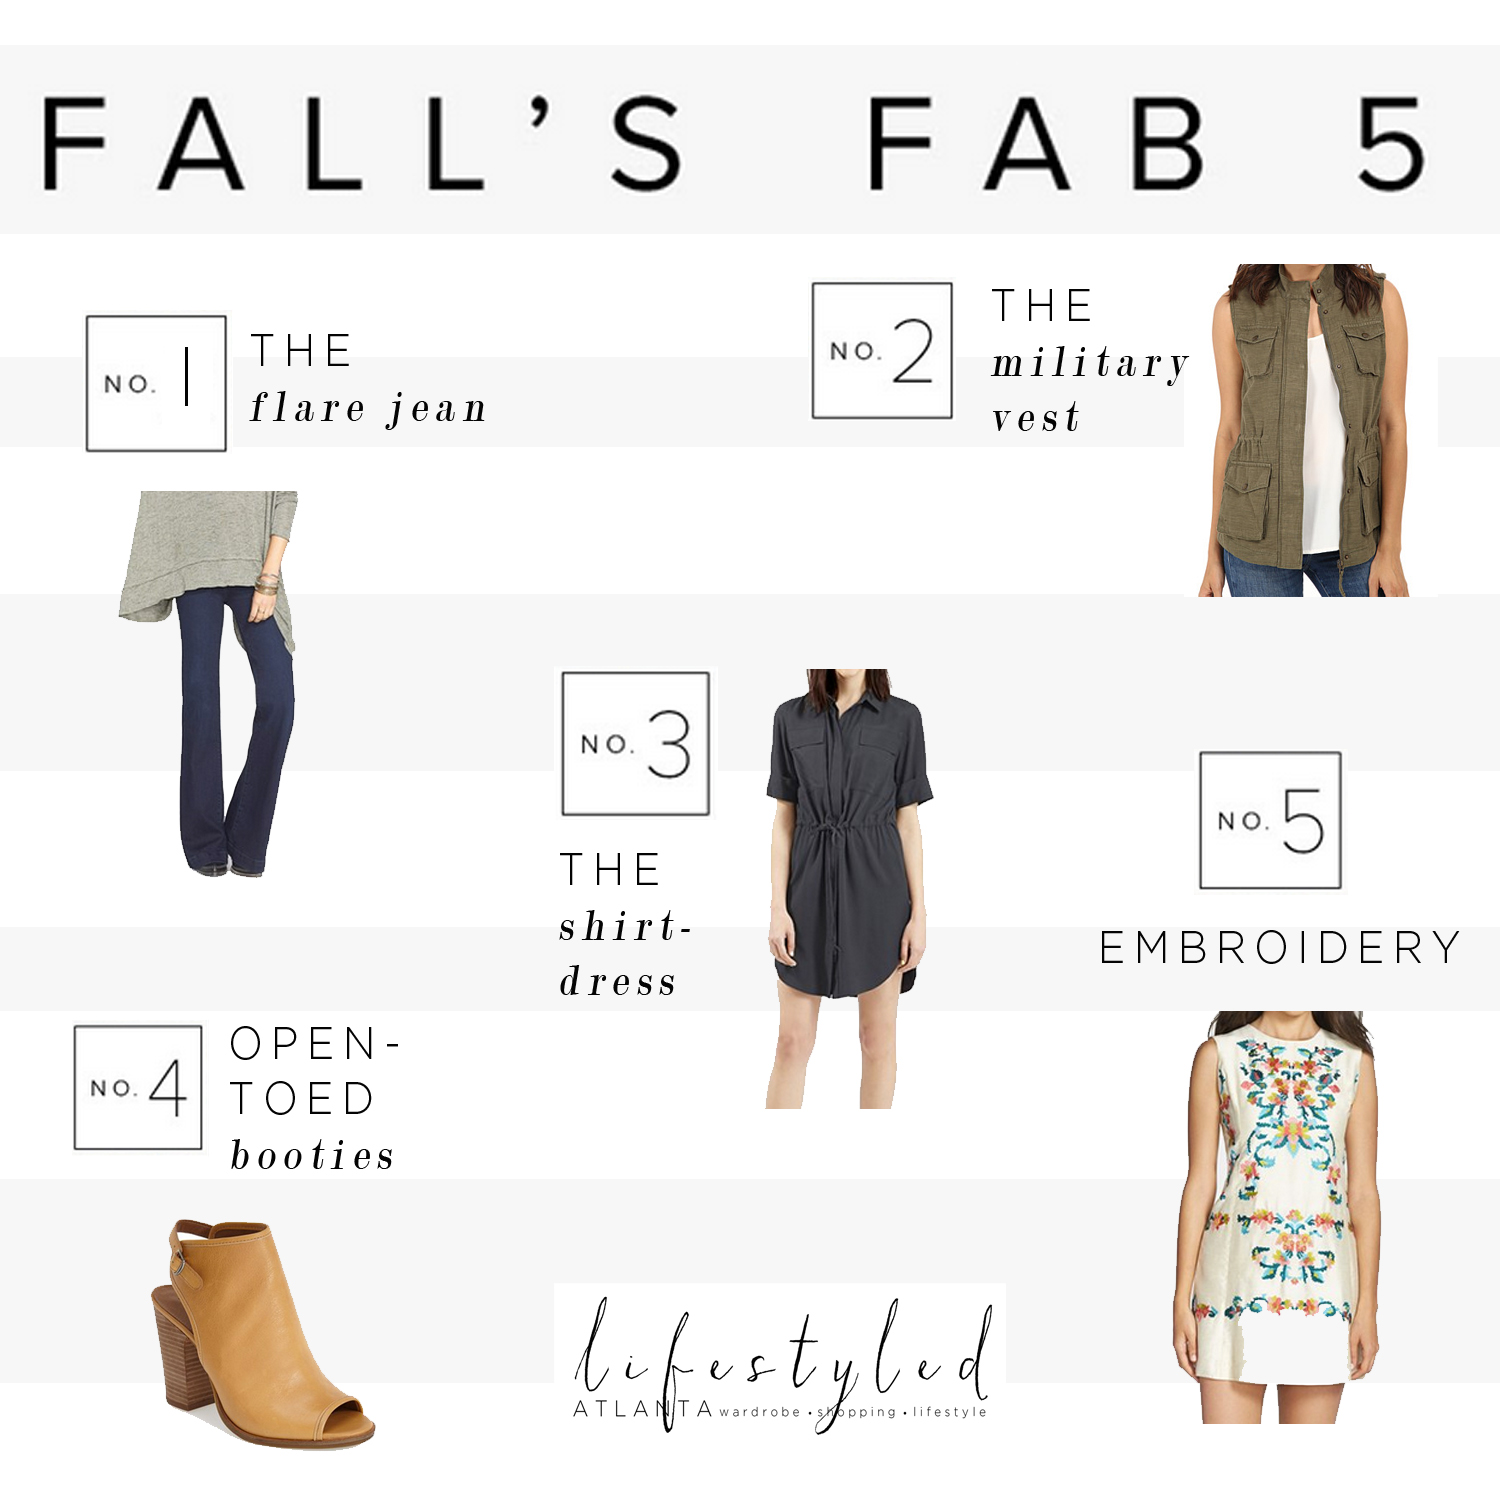 fall fab five essentials lifestyled atlanta